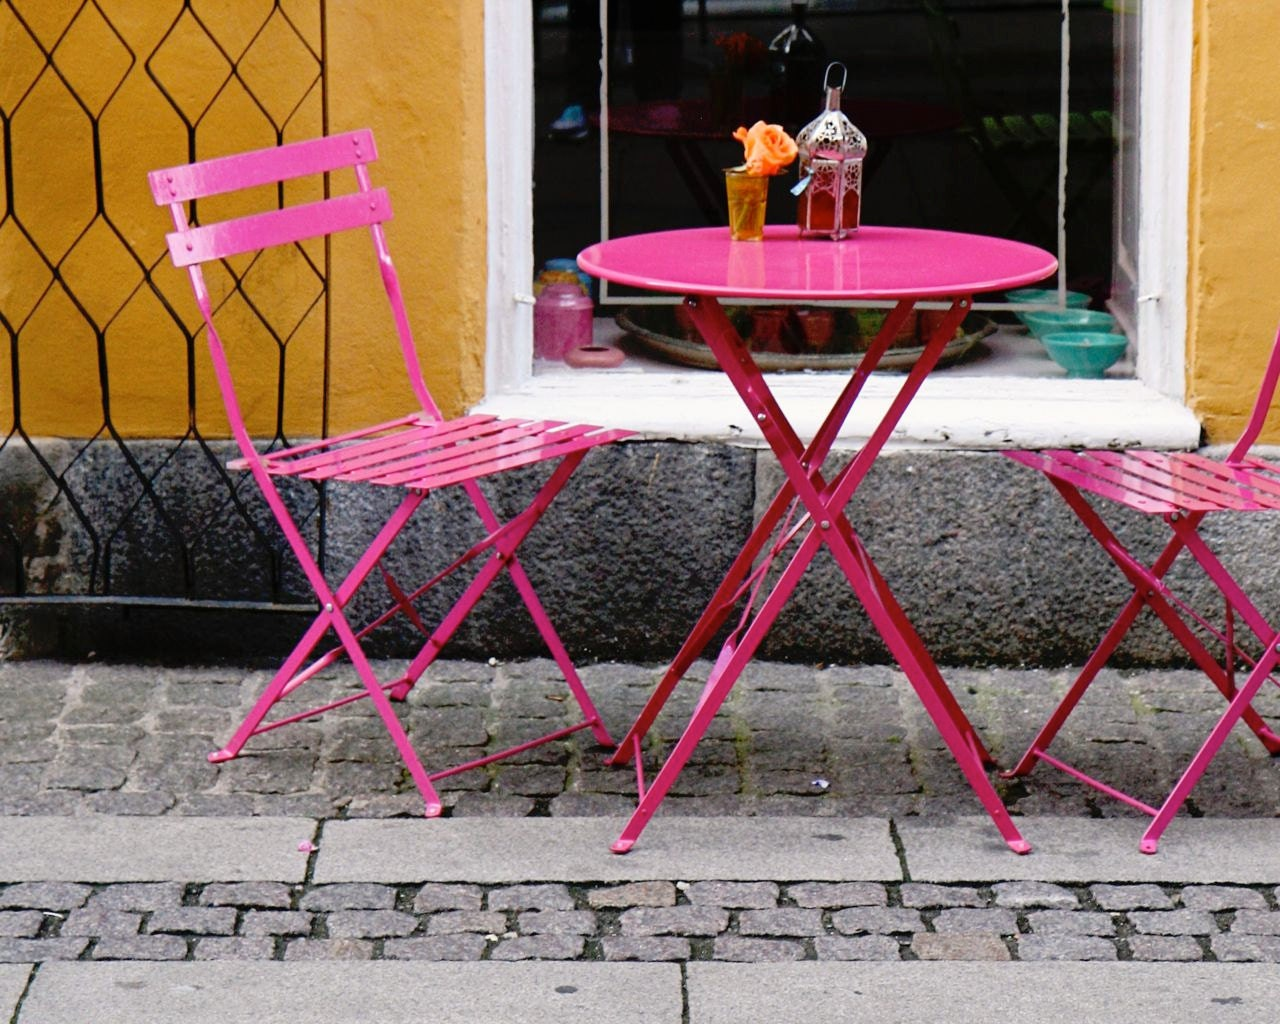 Cafe Print   Copenhagen Photography   Hot Pink And Orange Decor   Denmark  Travel Photo Bistro Table Chairs Photograph   Kitchen Art